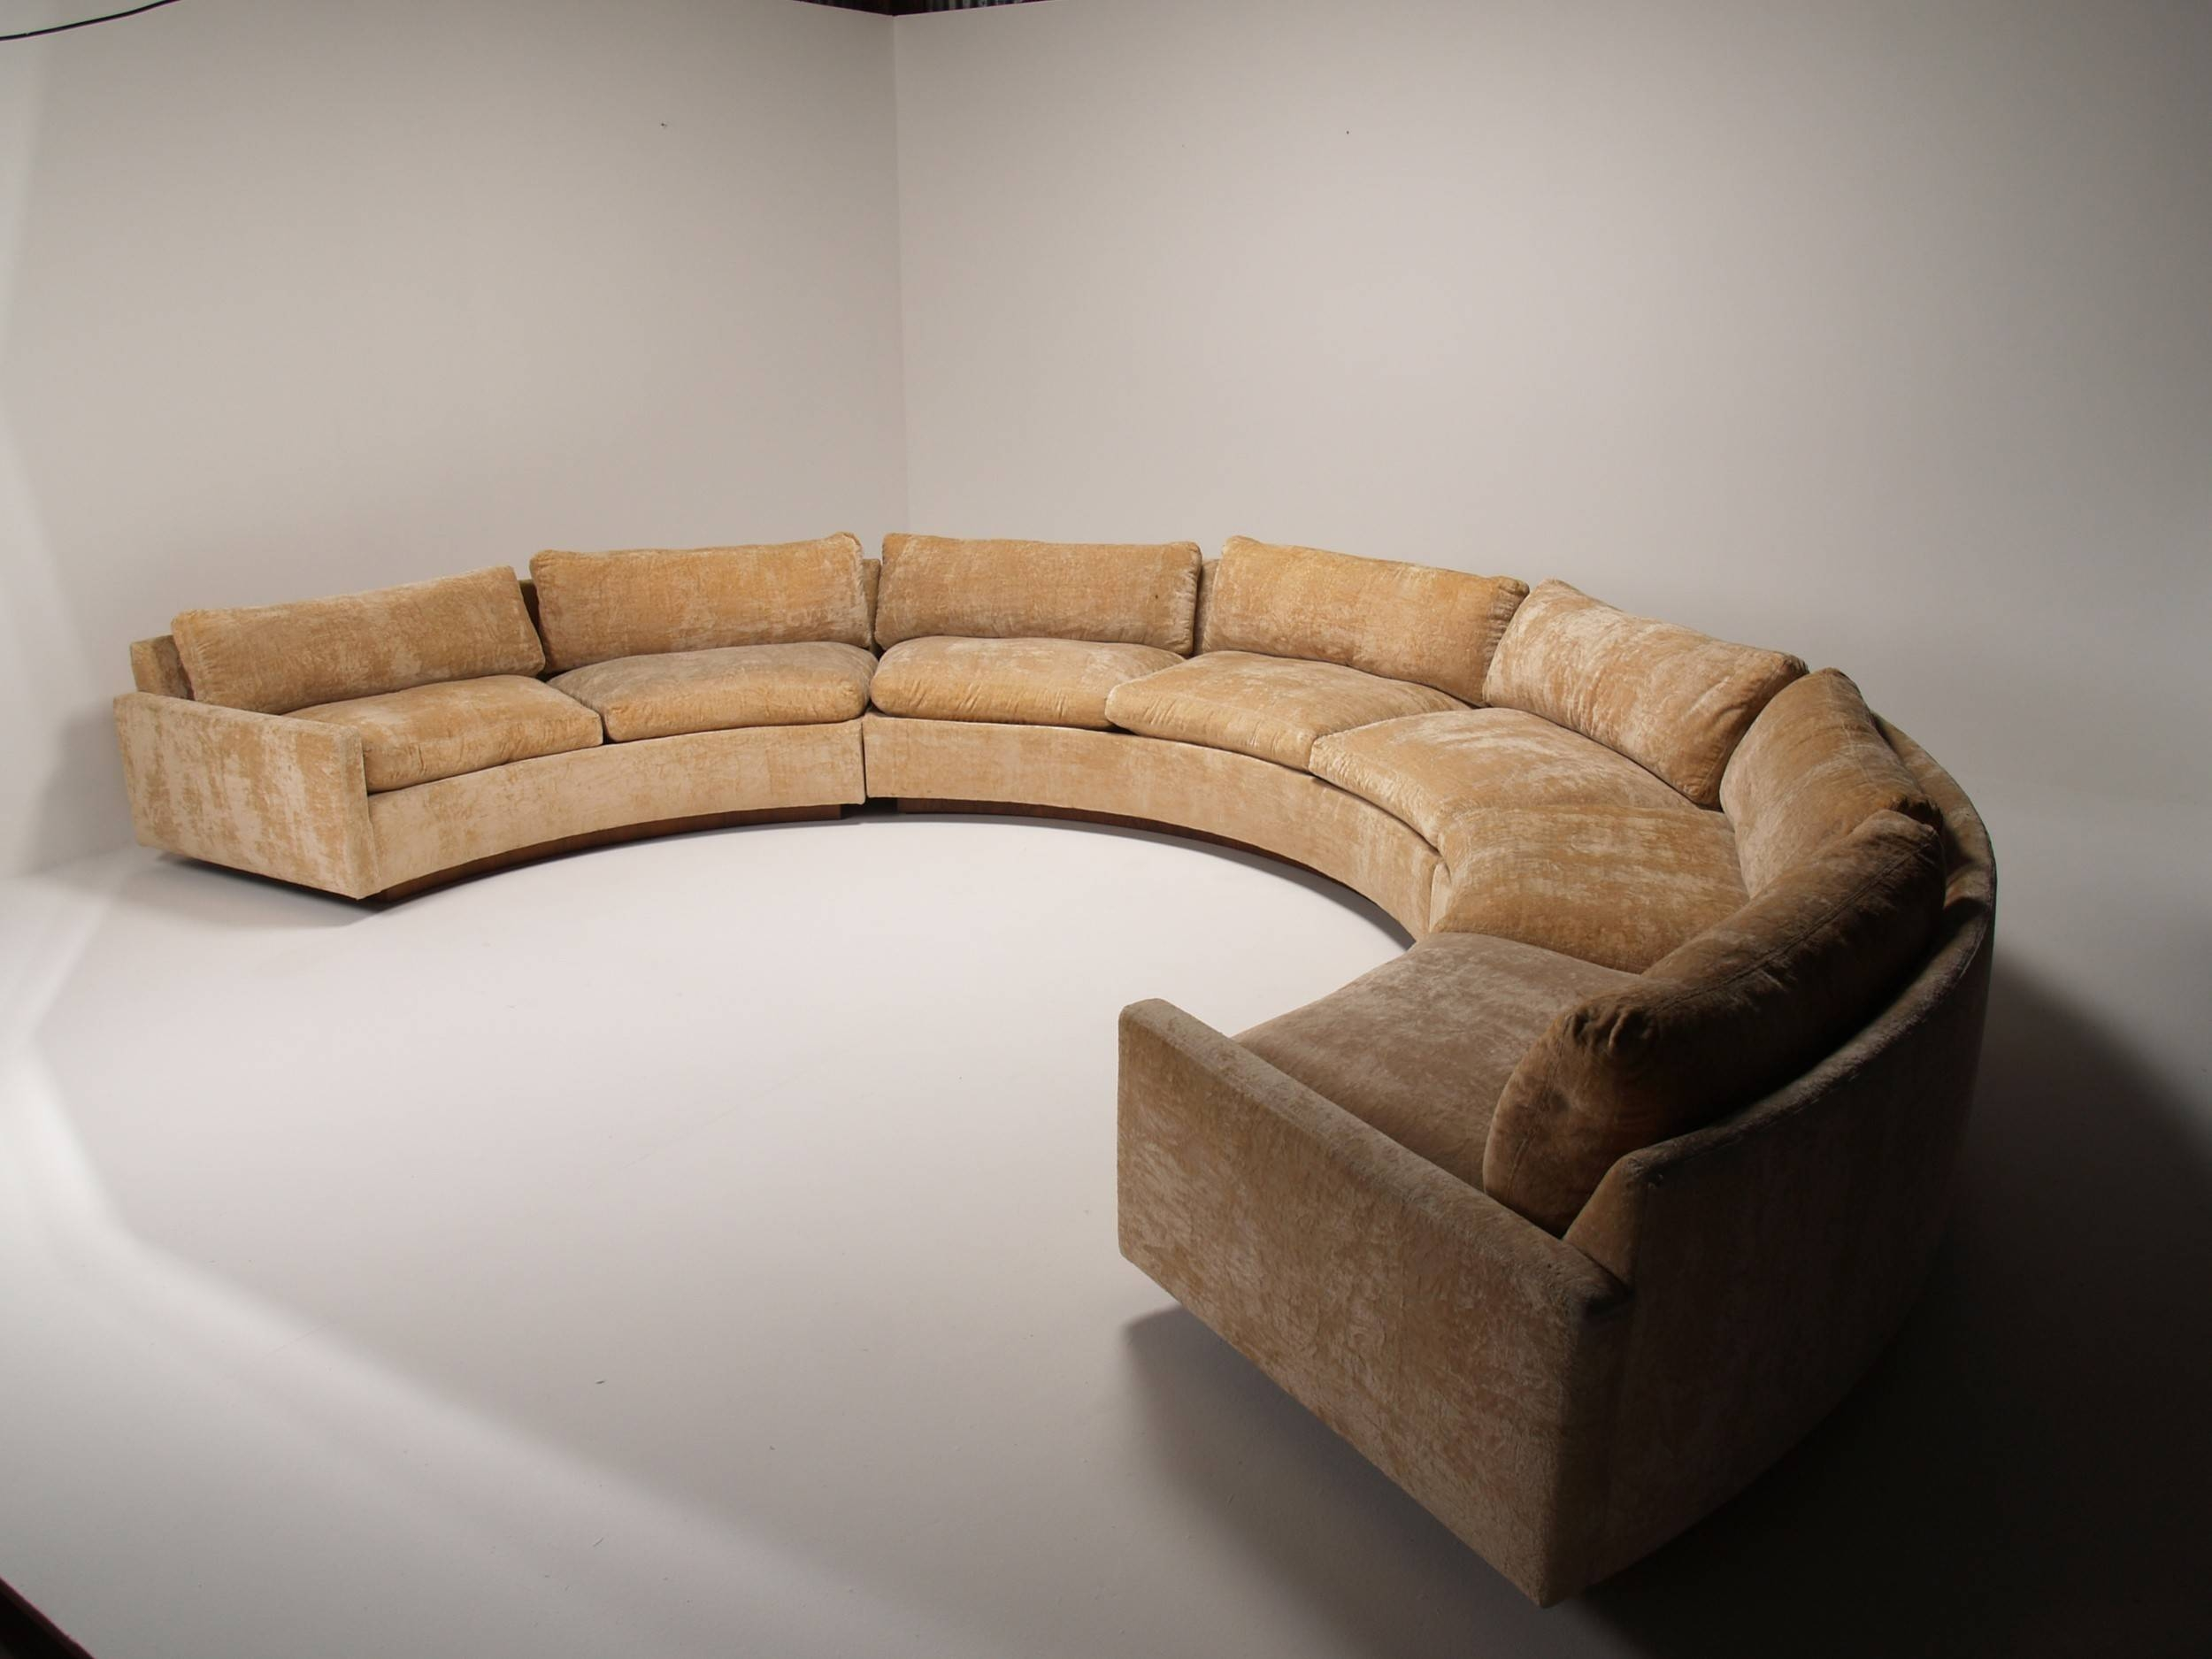 Sofa: Cool Couches For Provides A Warm To Comfortable Feel And Low throughout Tufted Sectional Sofa Chaise (Image 15 of 25)